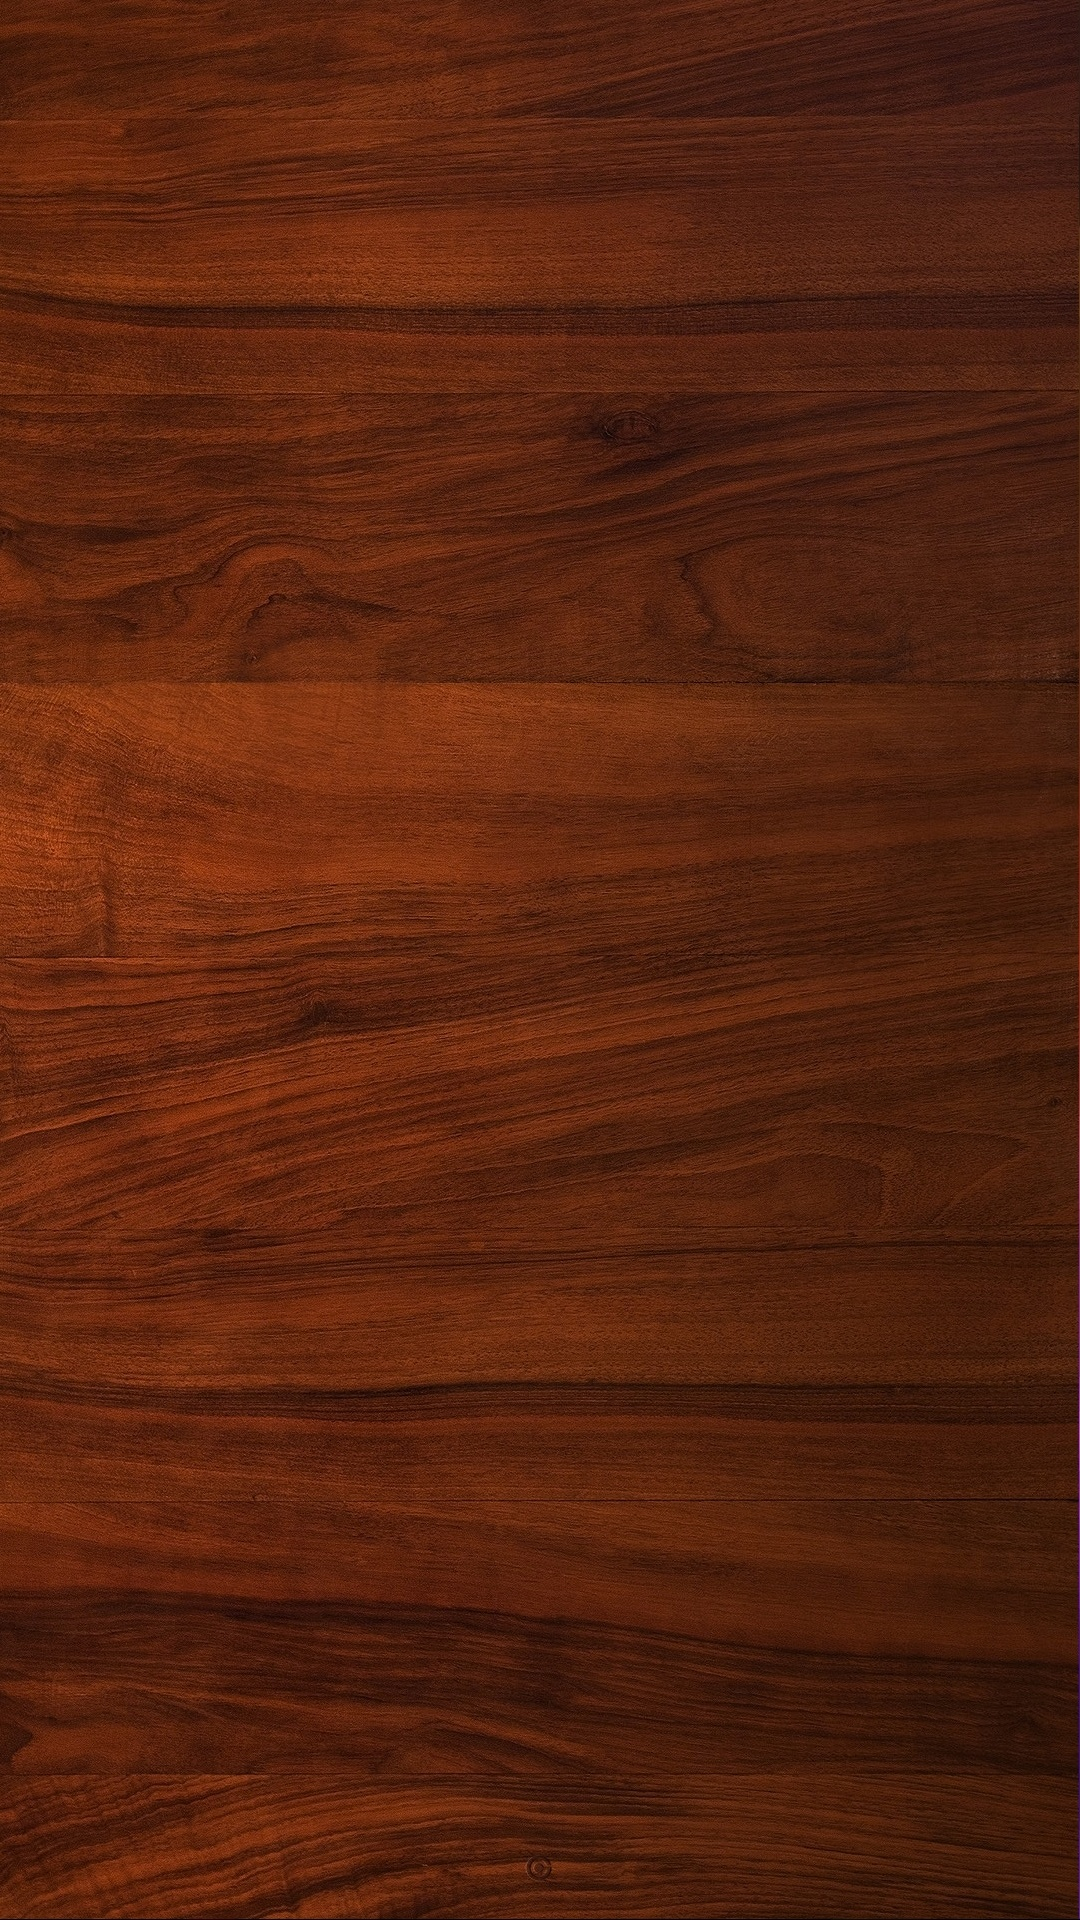 Iphone 5 Wallpaper Hd Shelves Textured Wood Wallpapers Group 74